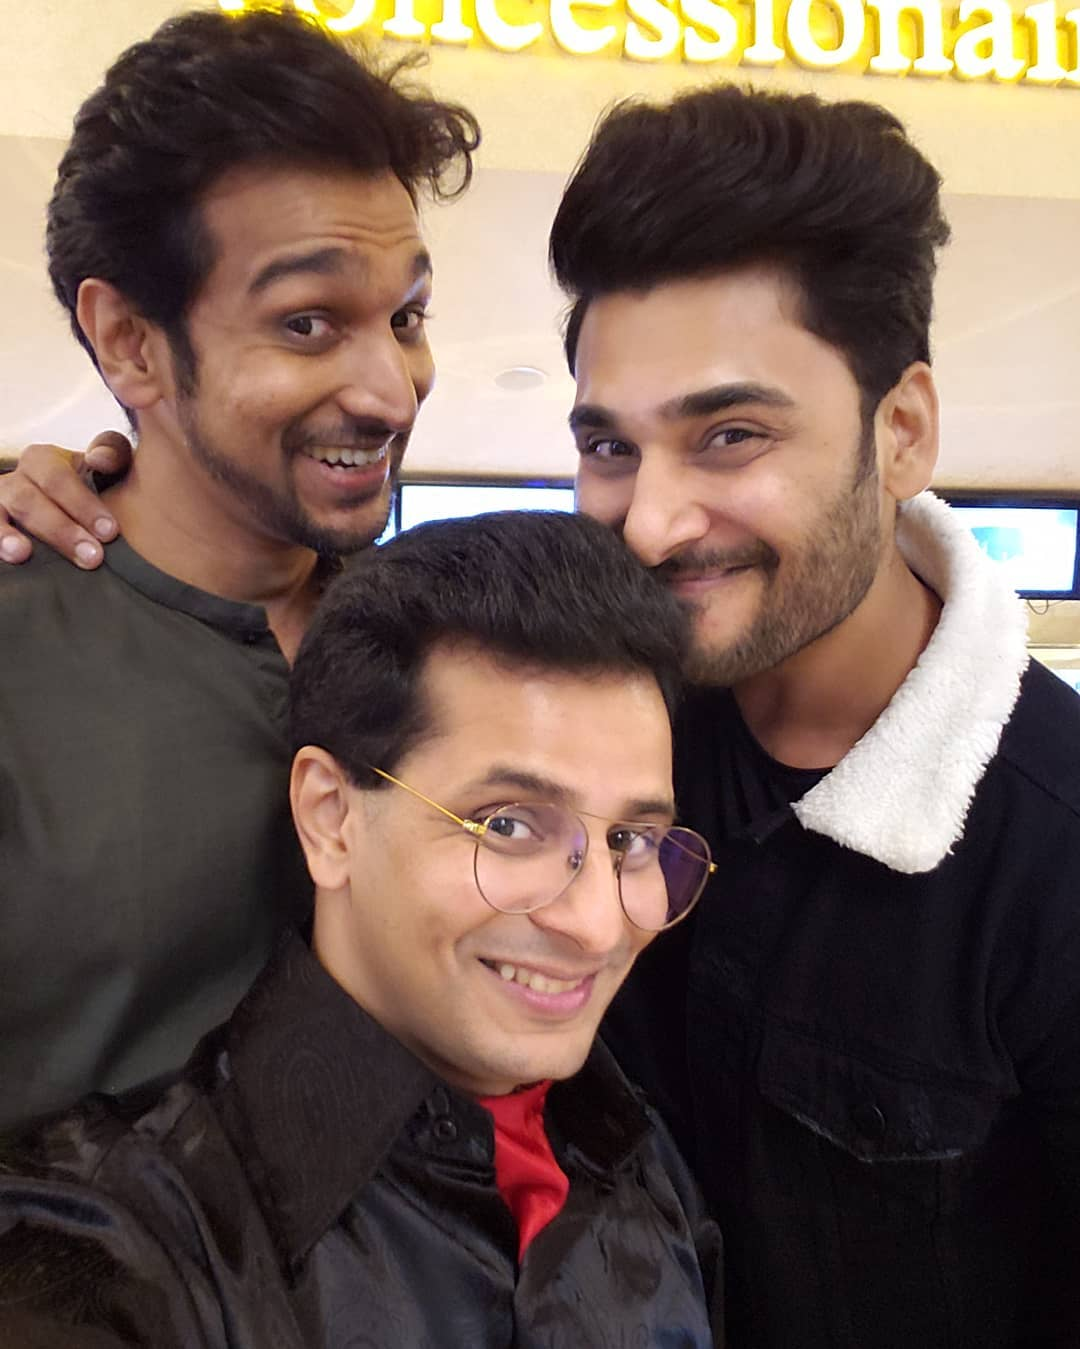 Most beloved selfie ever 🥰 Just can't get over this one! Reuniting with my Thor and Loki aka @pratikgandhiofficial and @bharatchawda20 long after